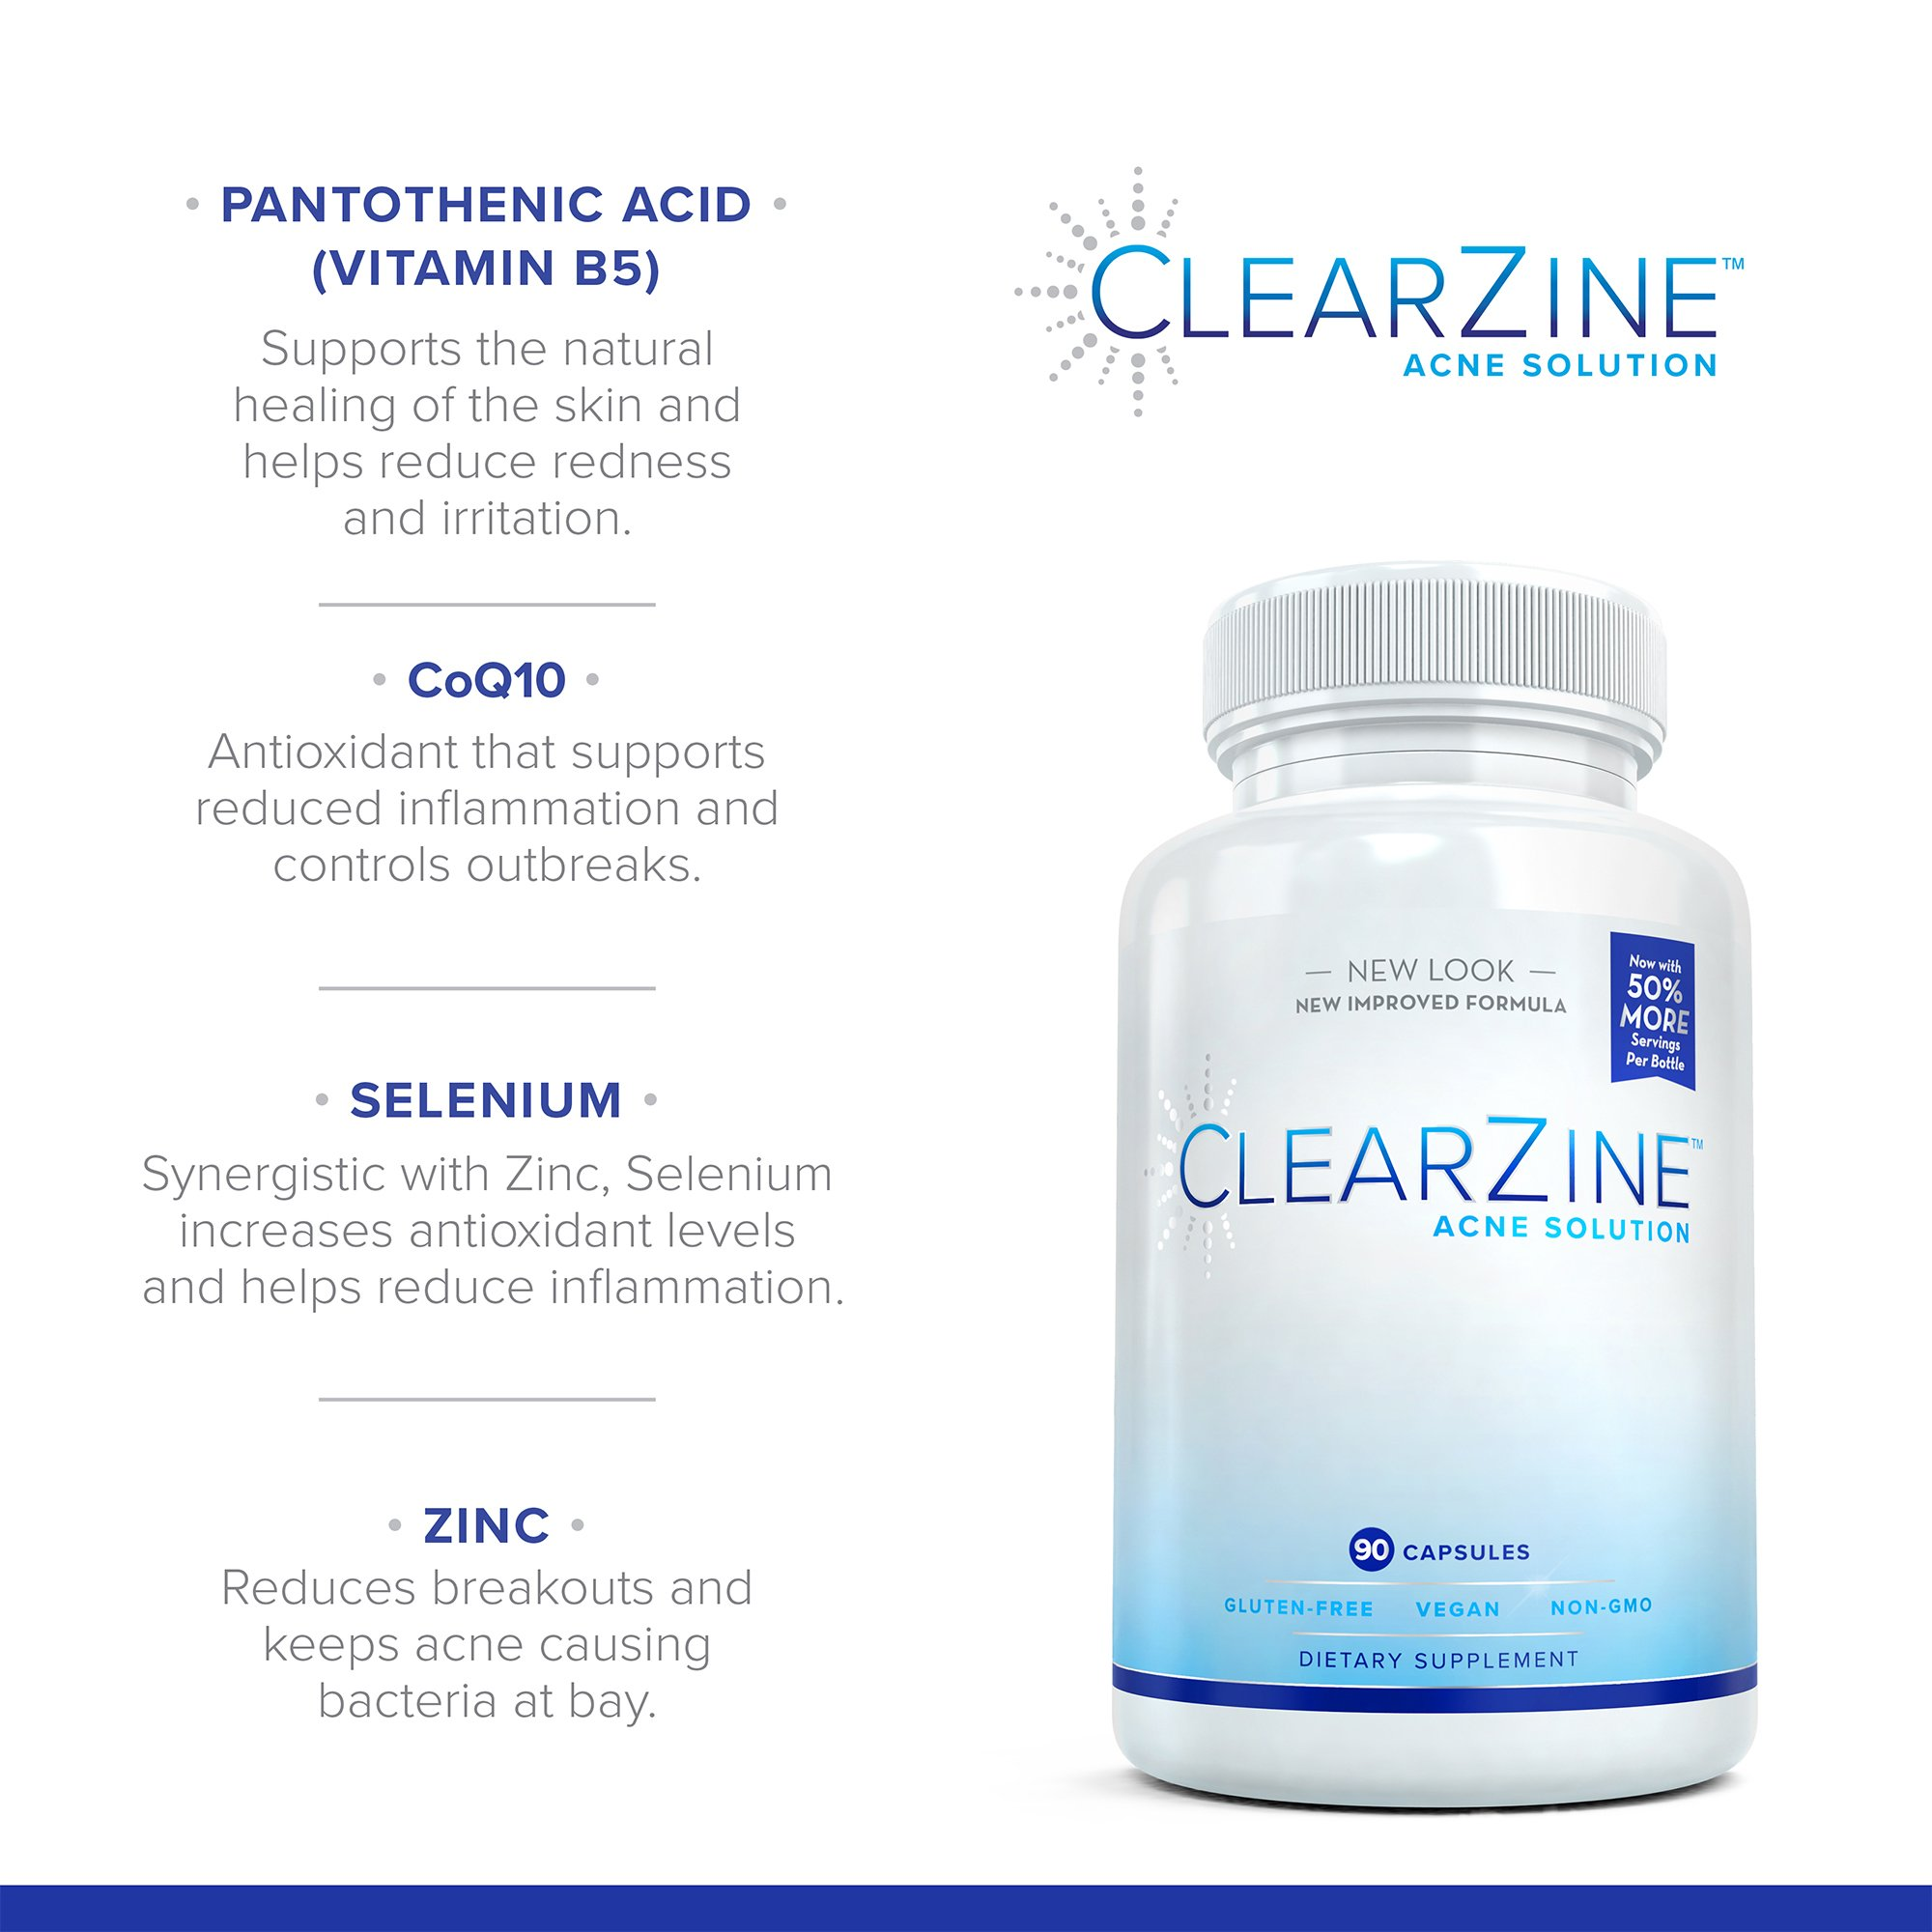 ClearZine Acne Pills for Teens & Adults   Clear Skin Supplement, Vitamins for Hormonal & Cystic Acne   Stop Breakouts, Oily Skin with Milk Thistle, Pantothenic Acid & Zinc, 2 Bottles, 90 Caps Each by ClearZine (Image #6)